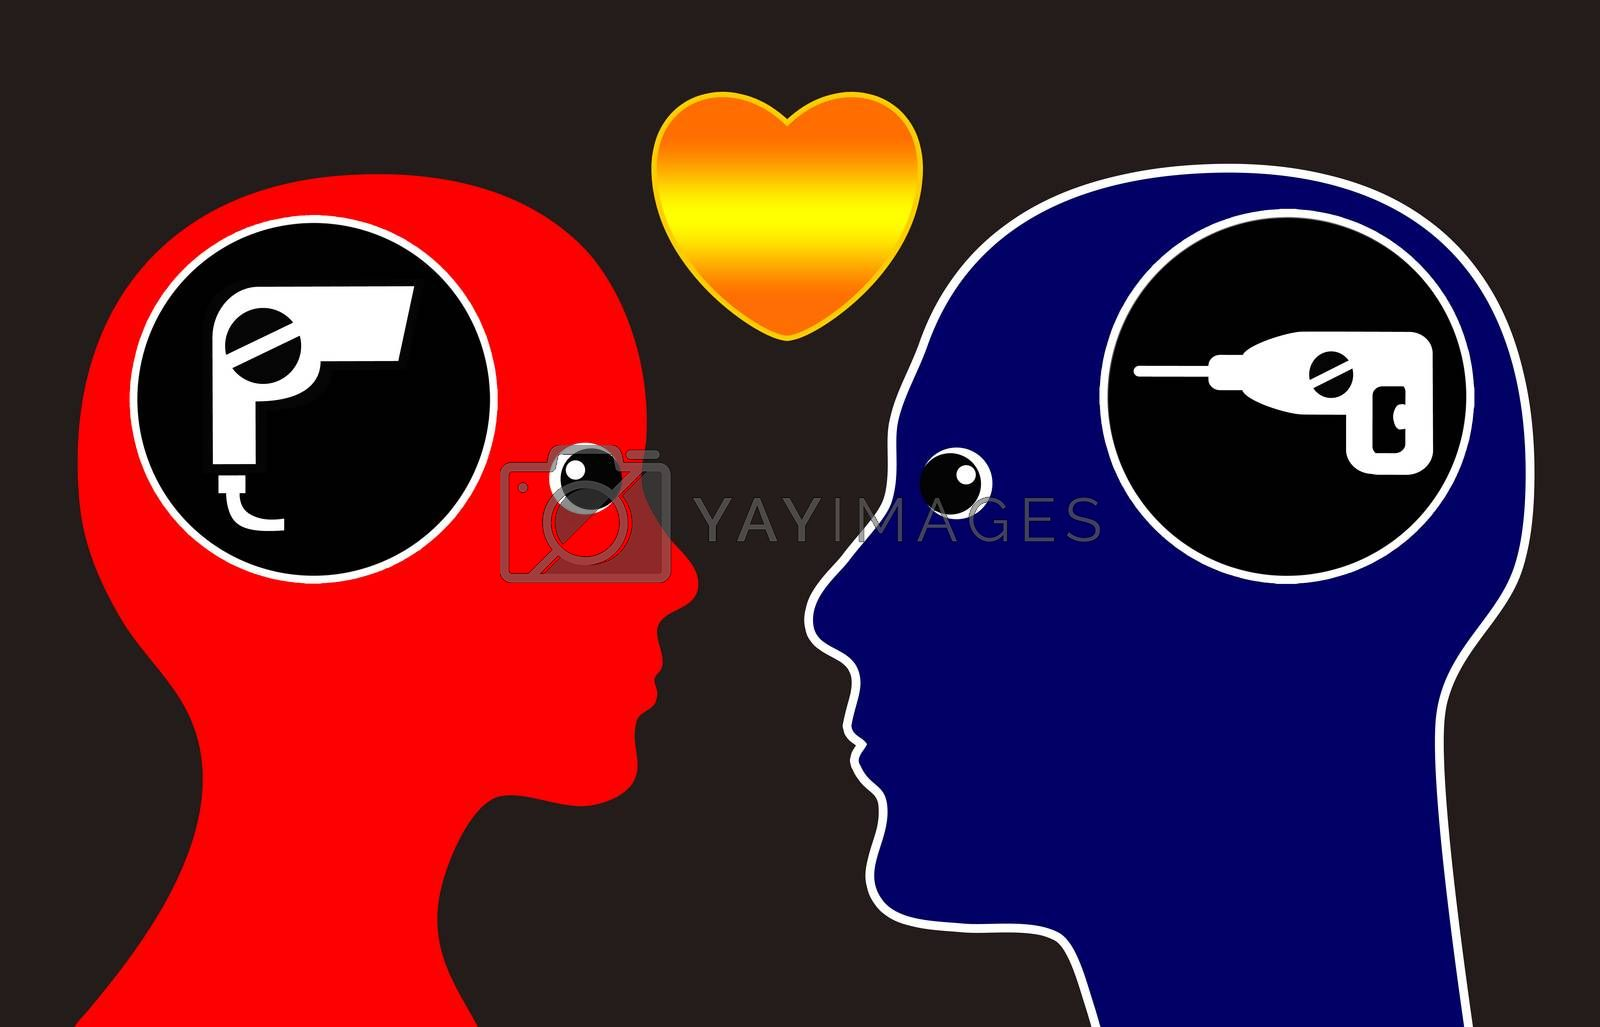 Concept that man and woman are attracted to opposites personalities